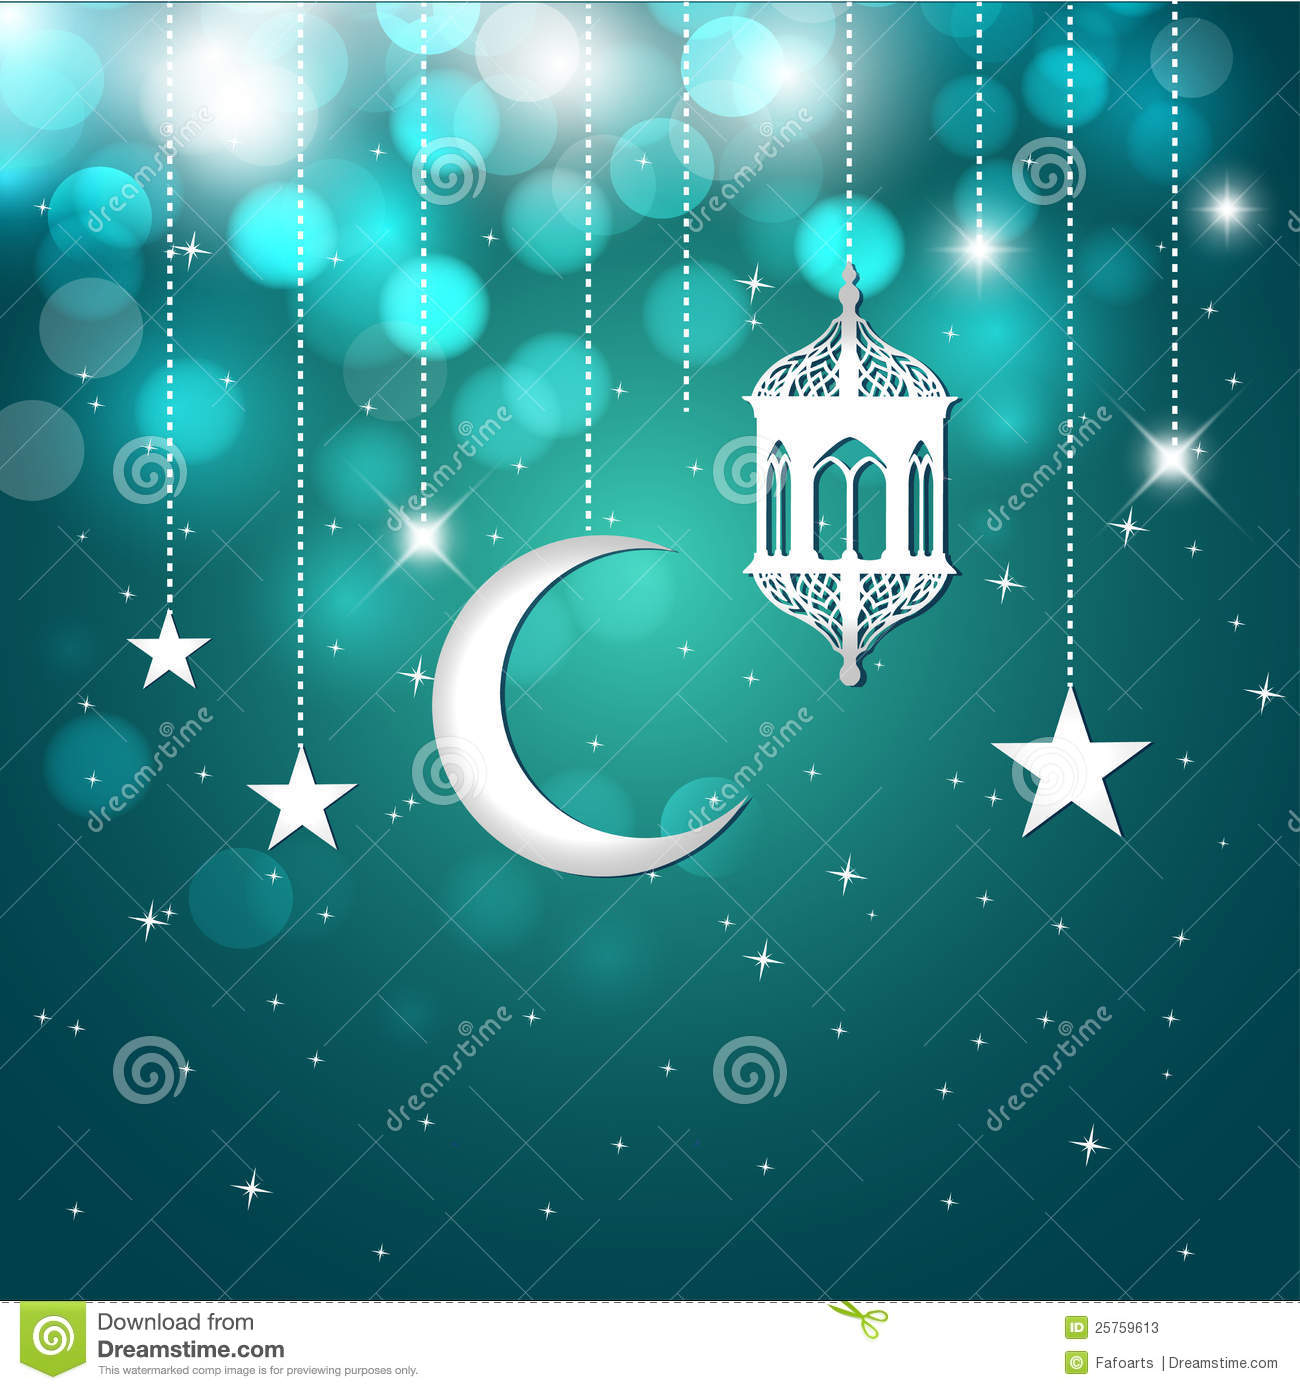 Ramazan greeting card ukrandiffusion ramadan greeting card stock illustration illustration of holy m4hsunfo